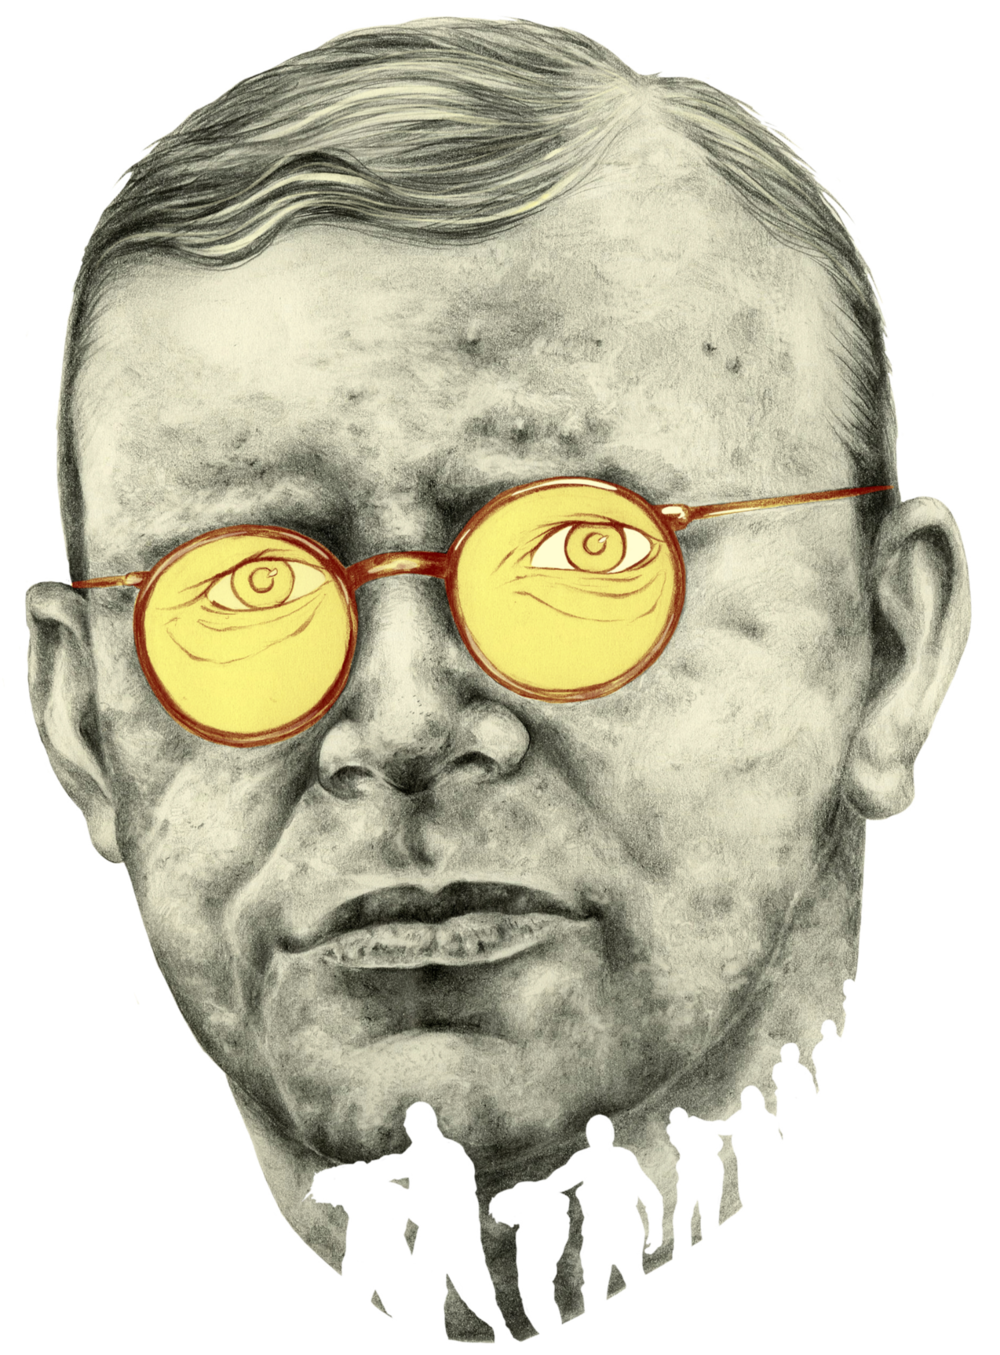 Self-directed work on the enduring legacies of oppressive regimes, featuring German pastor, martyr, and anti-Nazi dissident Dietrich Bonhoeffer, one of history's complicated resistance fighters